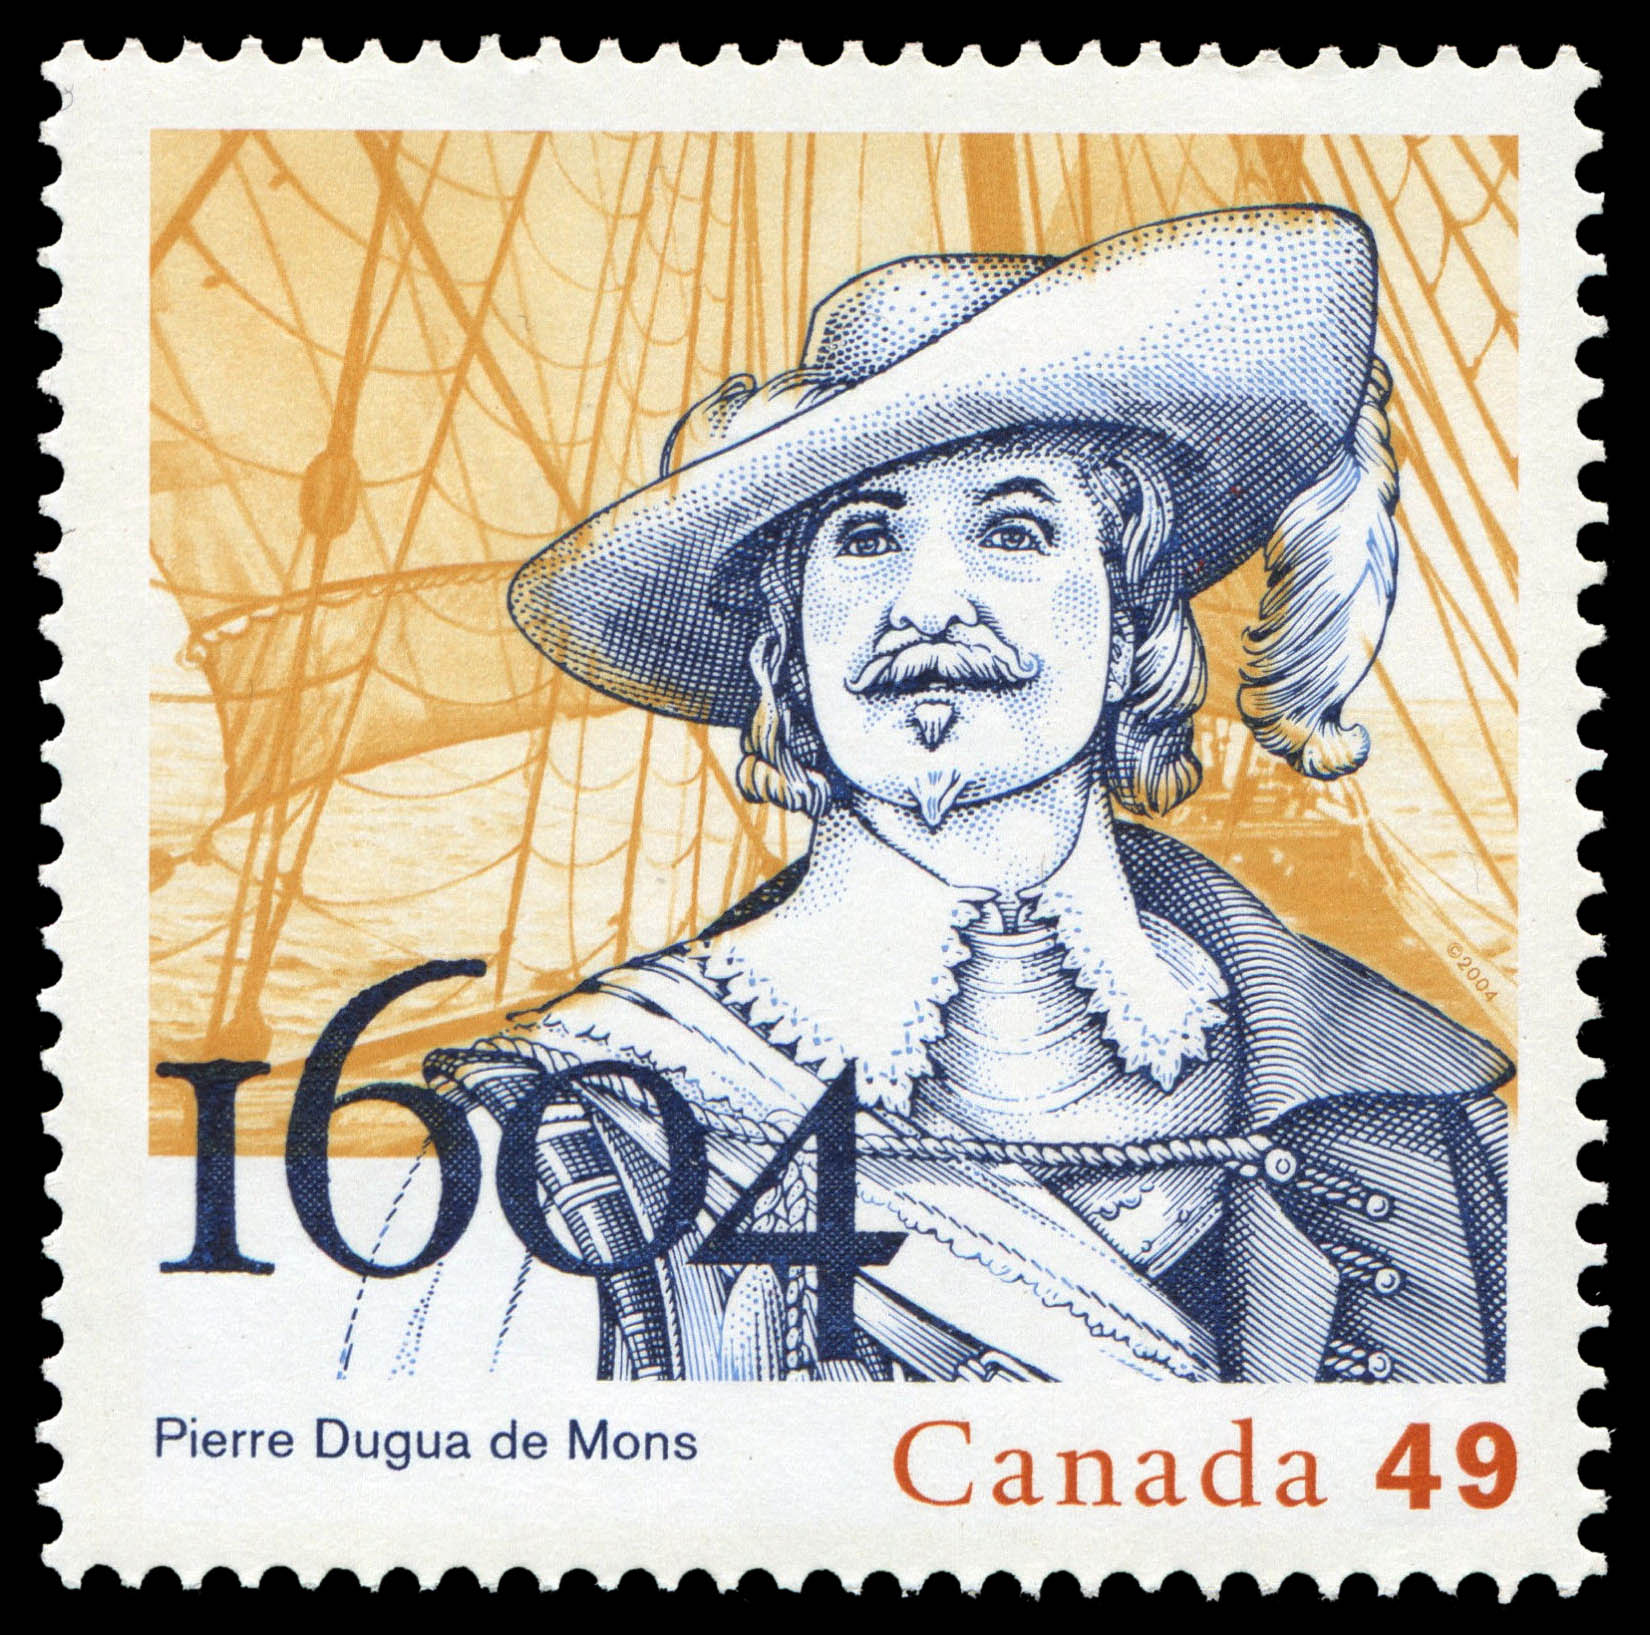 Pierre Dugua de Mons, 1604 Canada Postage Stamp | French settlements in North America